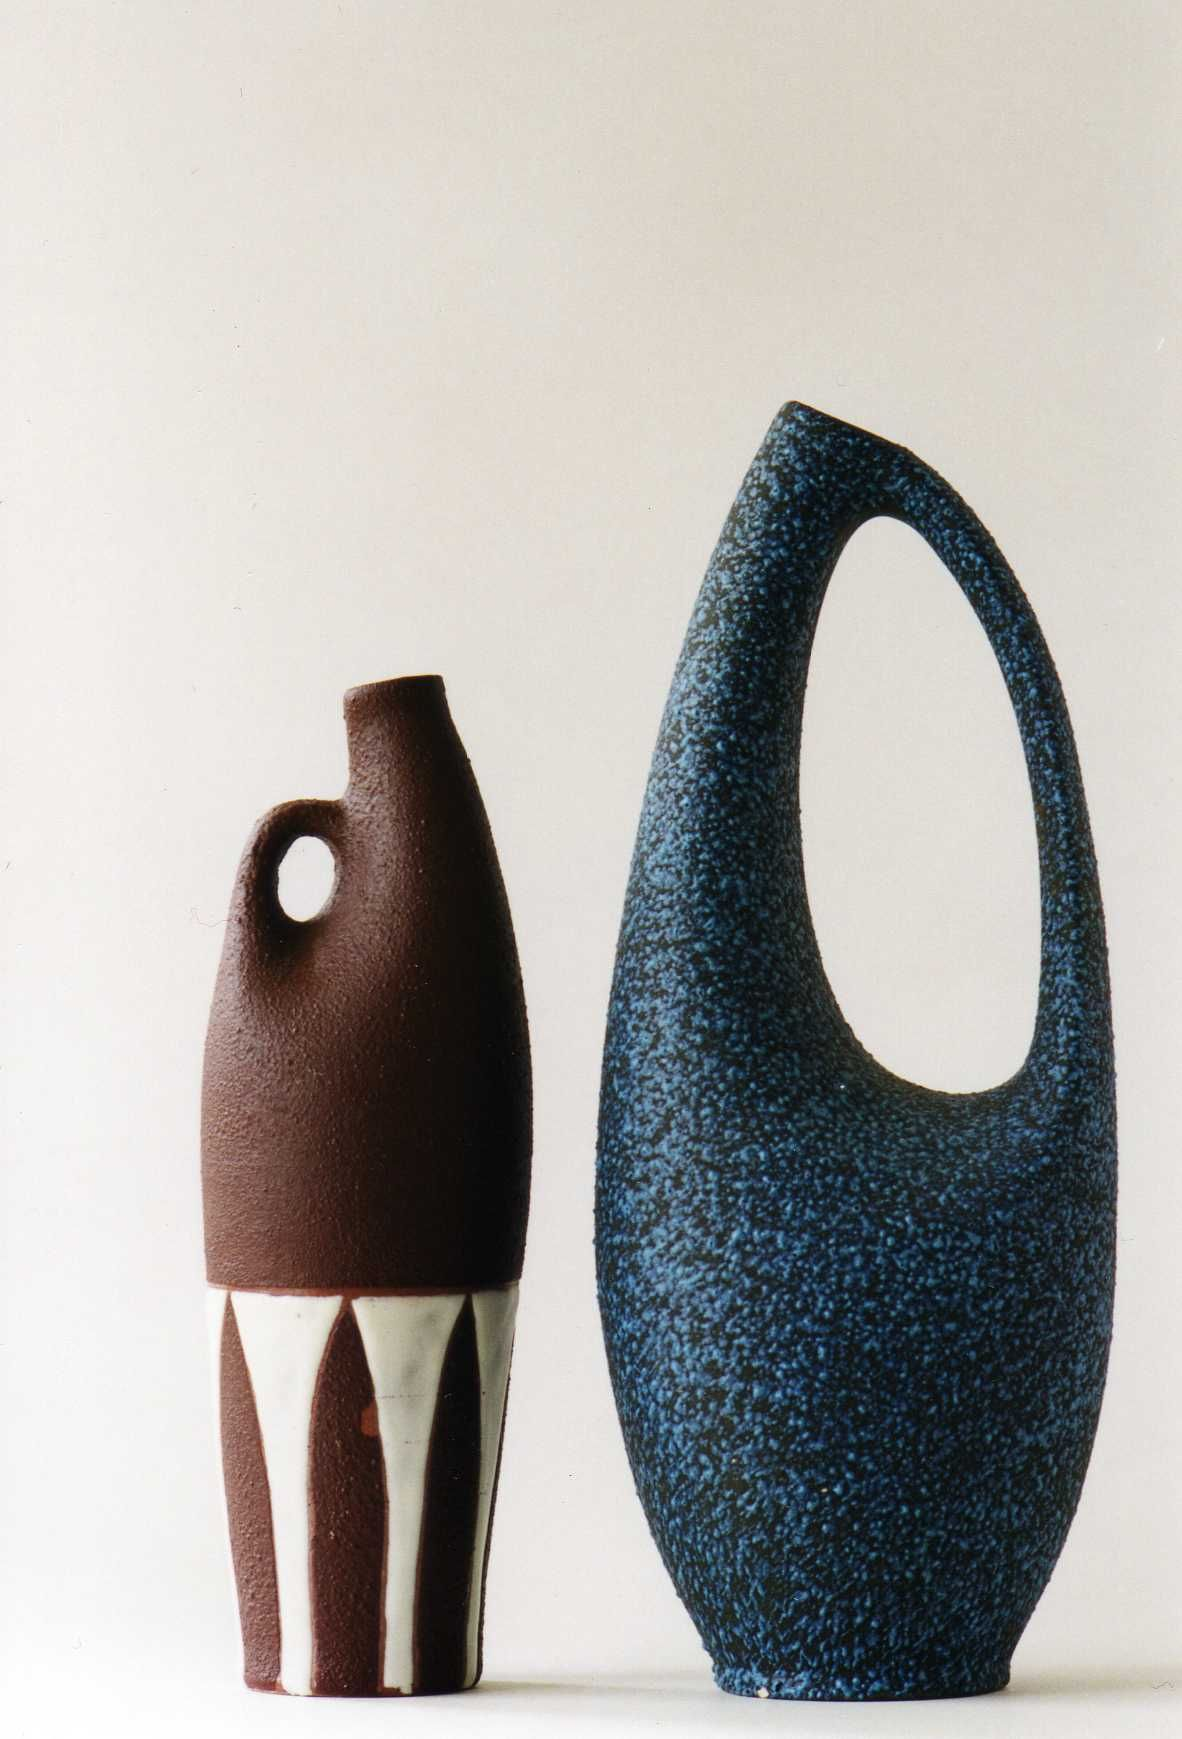 bauhaus vase Google Search Handmade pottery, Ceramics